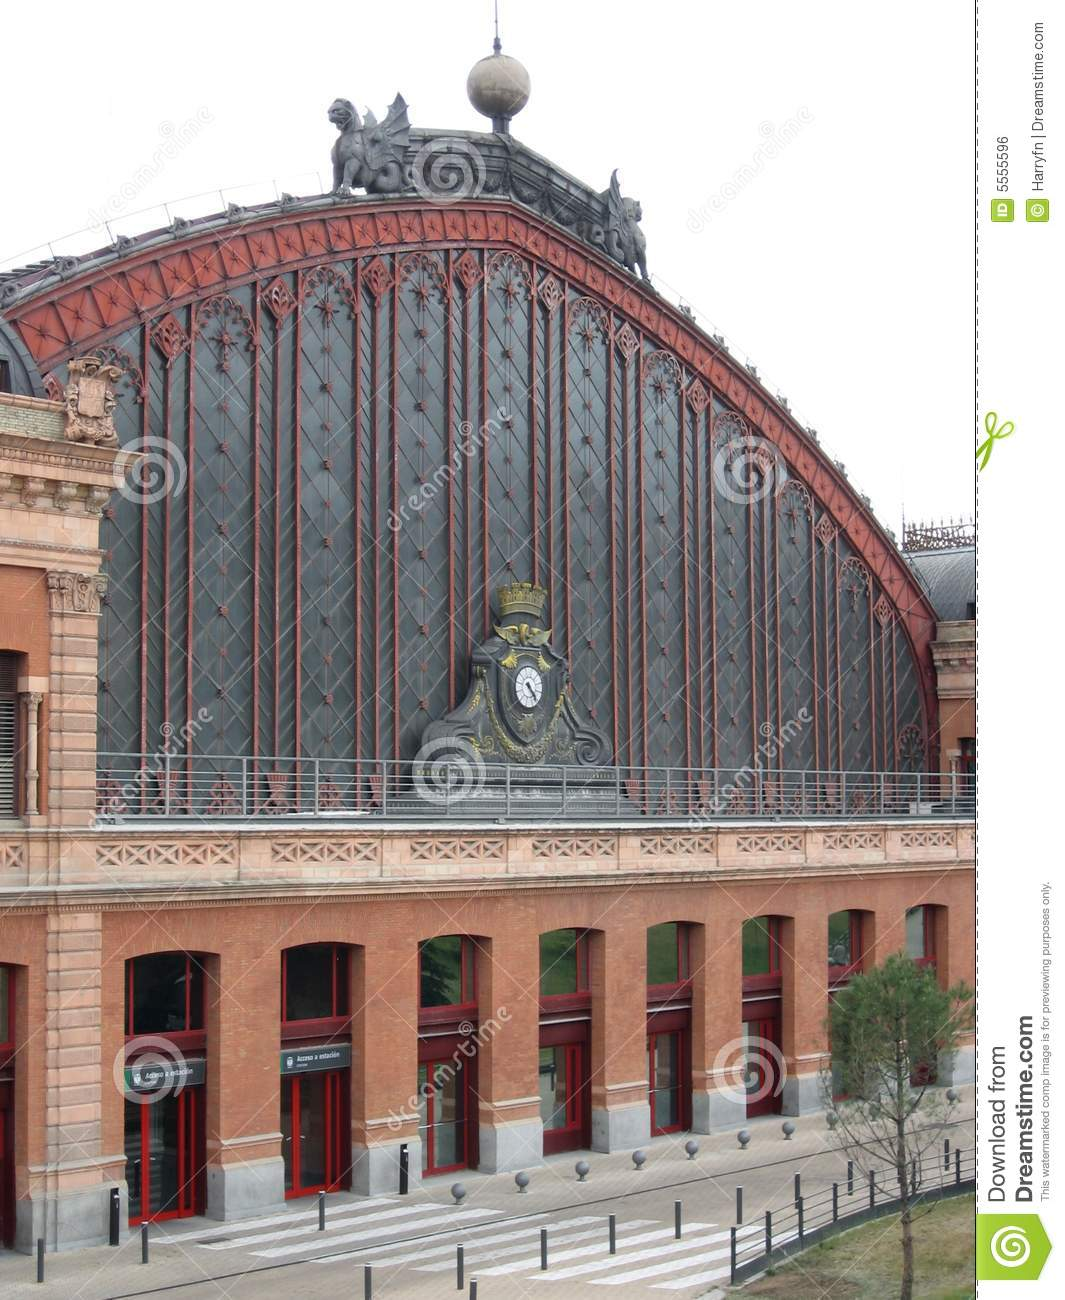 Madrid train station